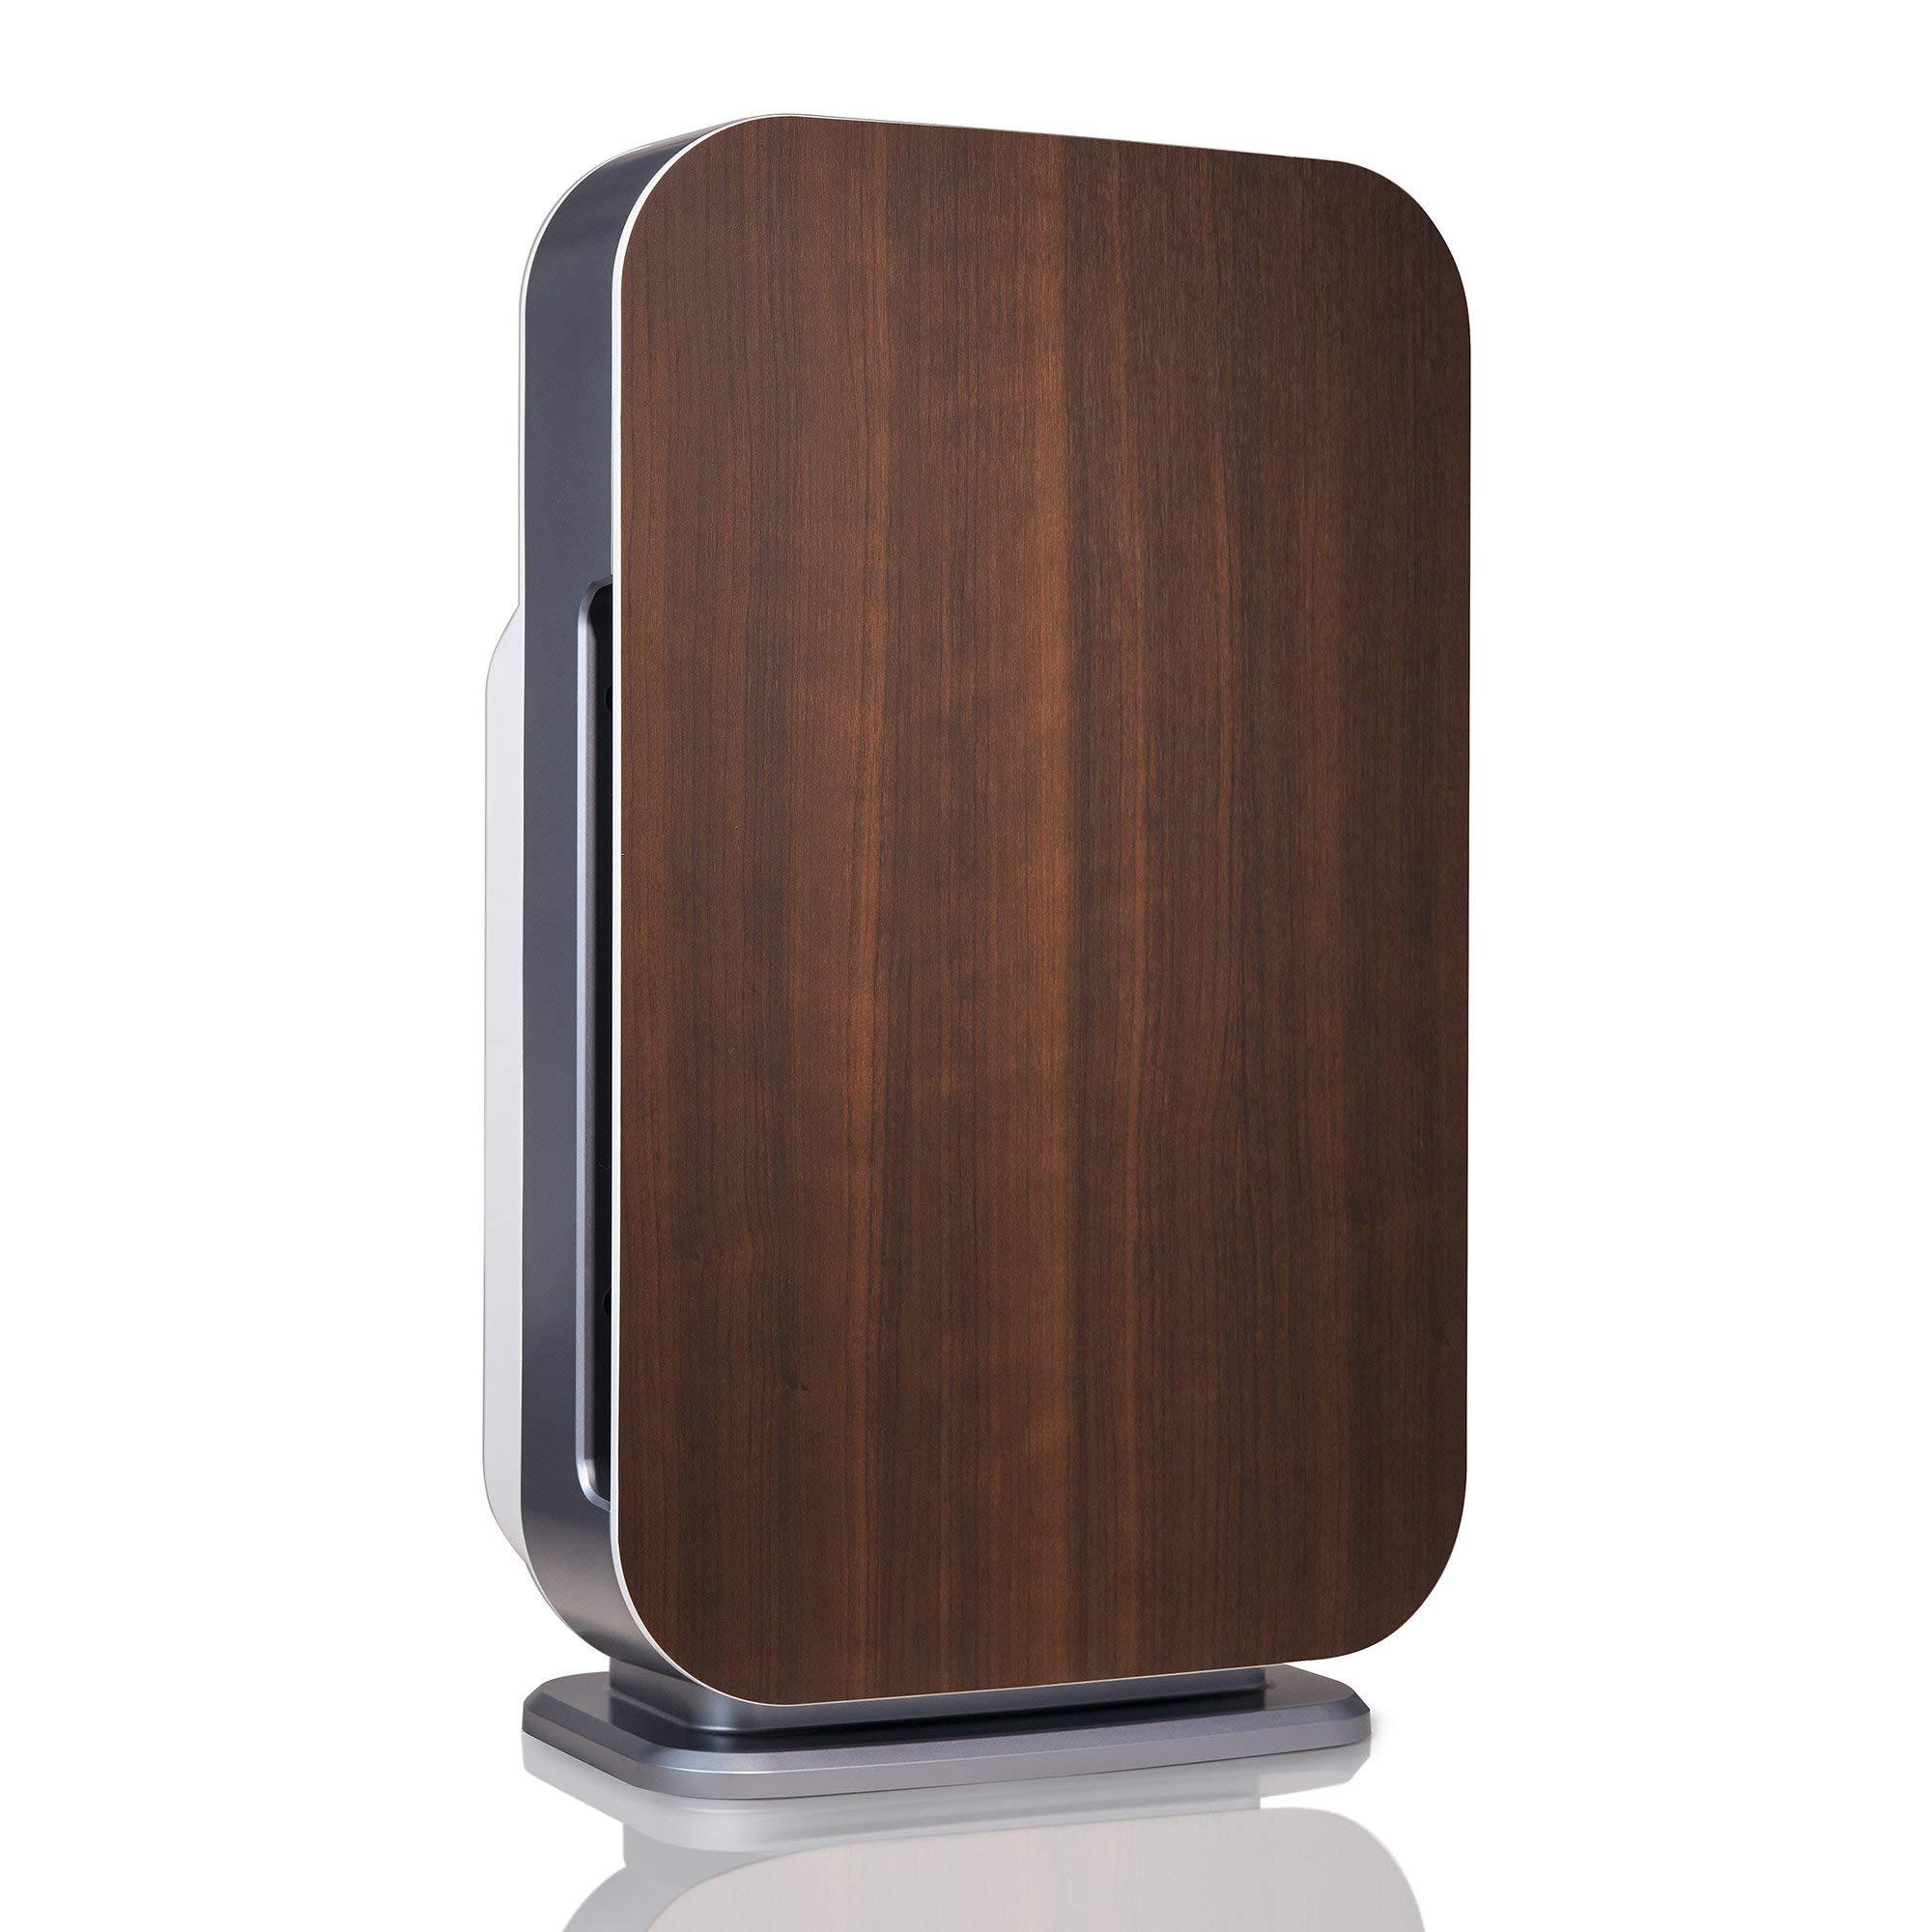 Alen BreatheSmart 45i HEPA Air Purifier for Rooms, 800 SqFt. Coverage Area, with Multi-Purpose HEPA Filter for Mold, Bacteria, Odors, Allergies, Dust, Dander, and Fur in Espresso by Alen